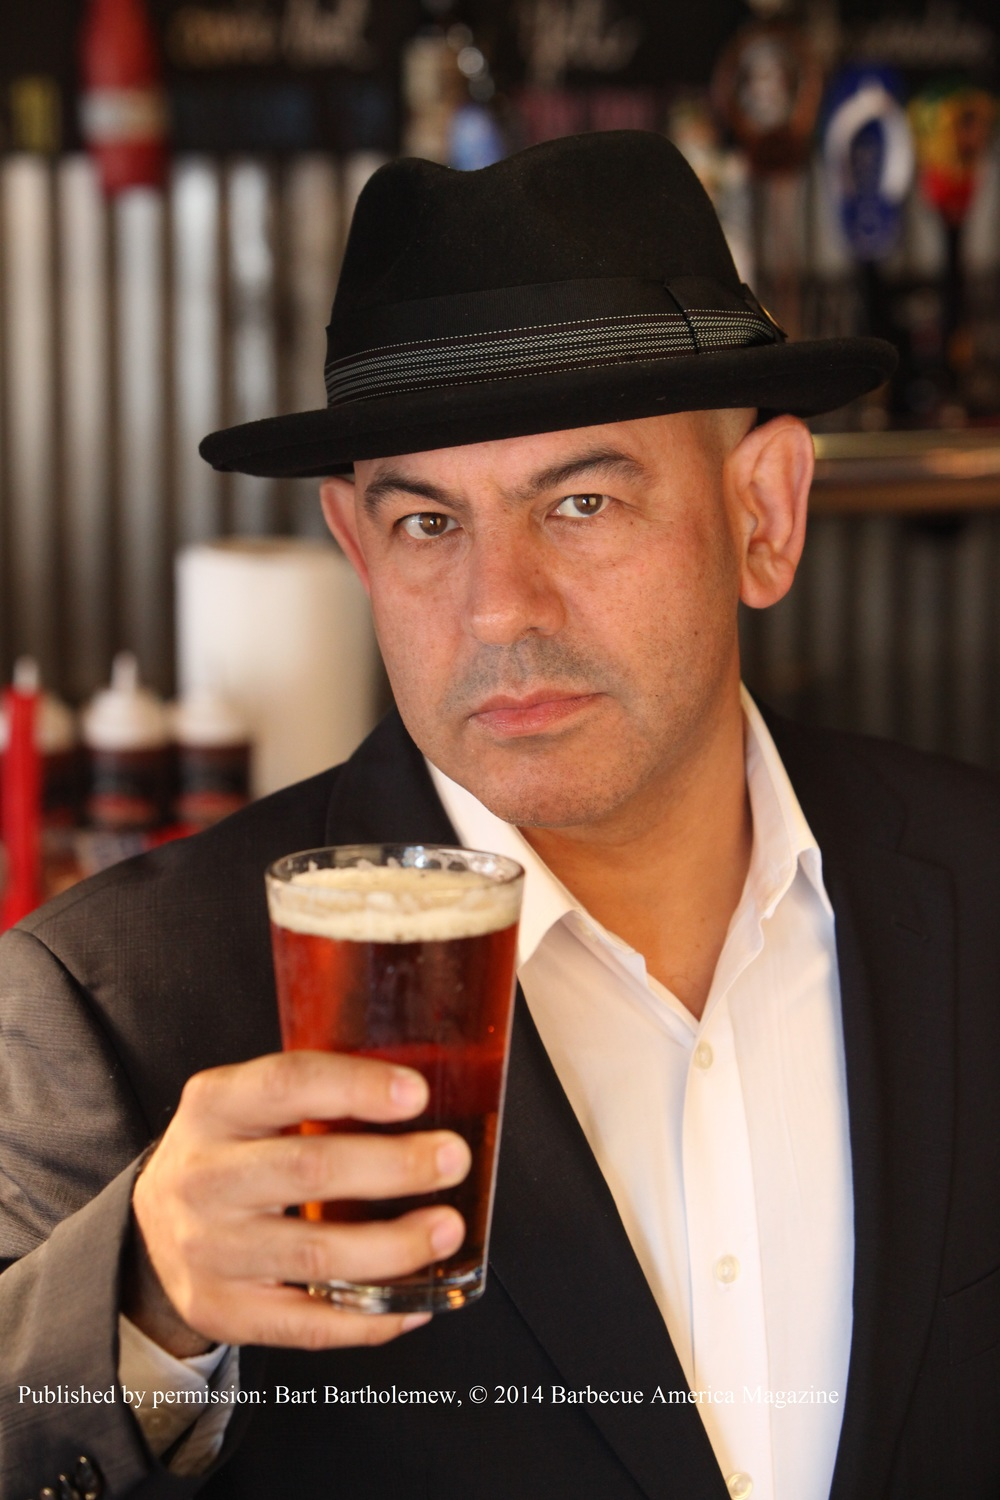 Food Network's toughest critic, Simon Majumdar. Photo: SimonMajumdar.com